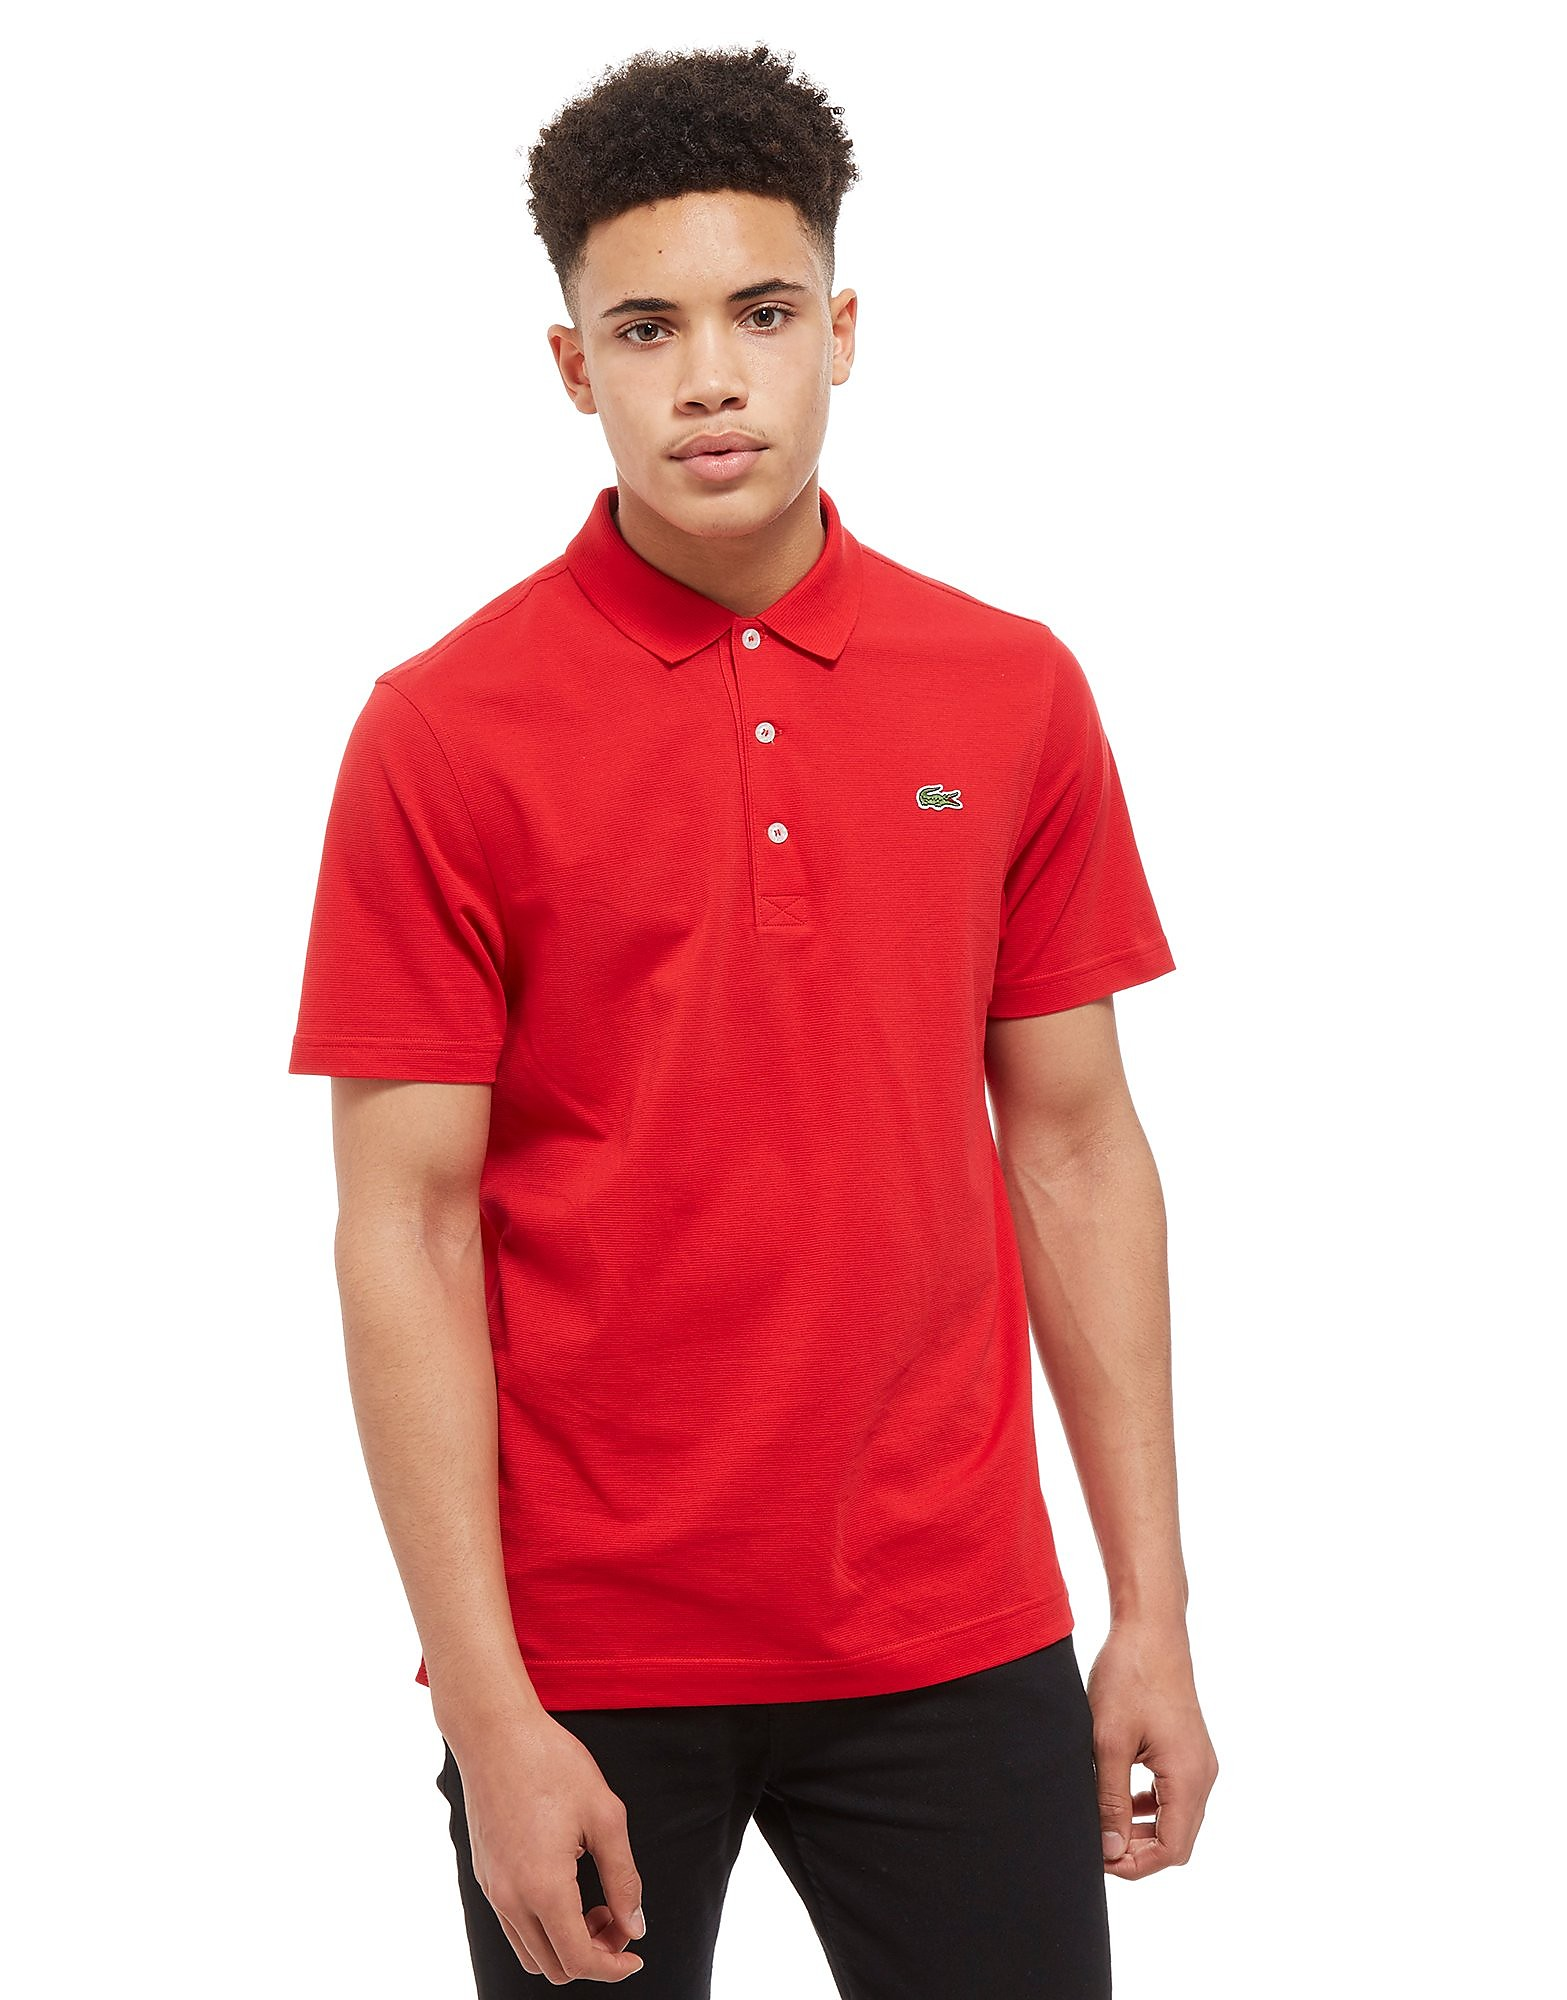 Lacoste polo Alligator de manga corta